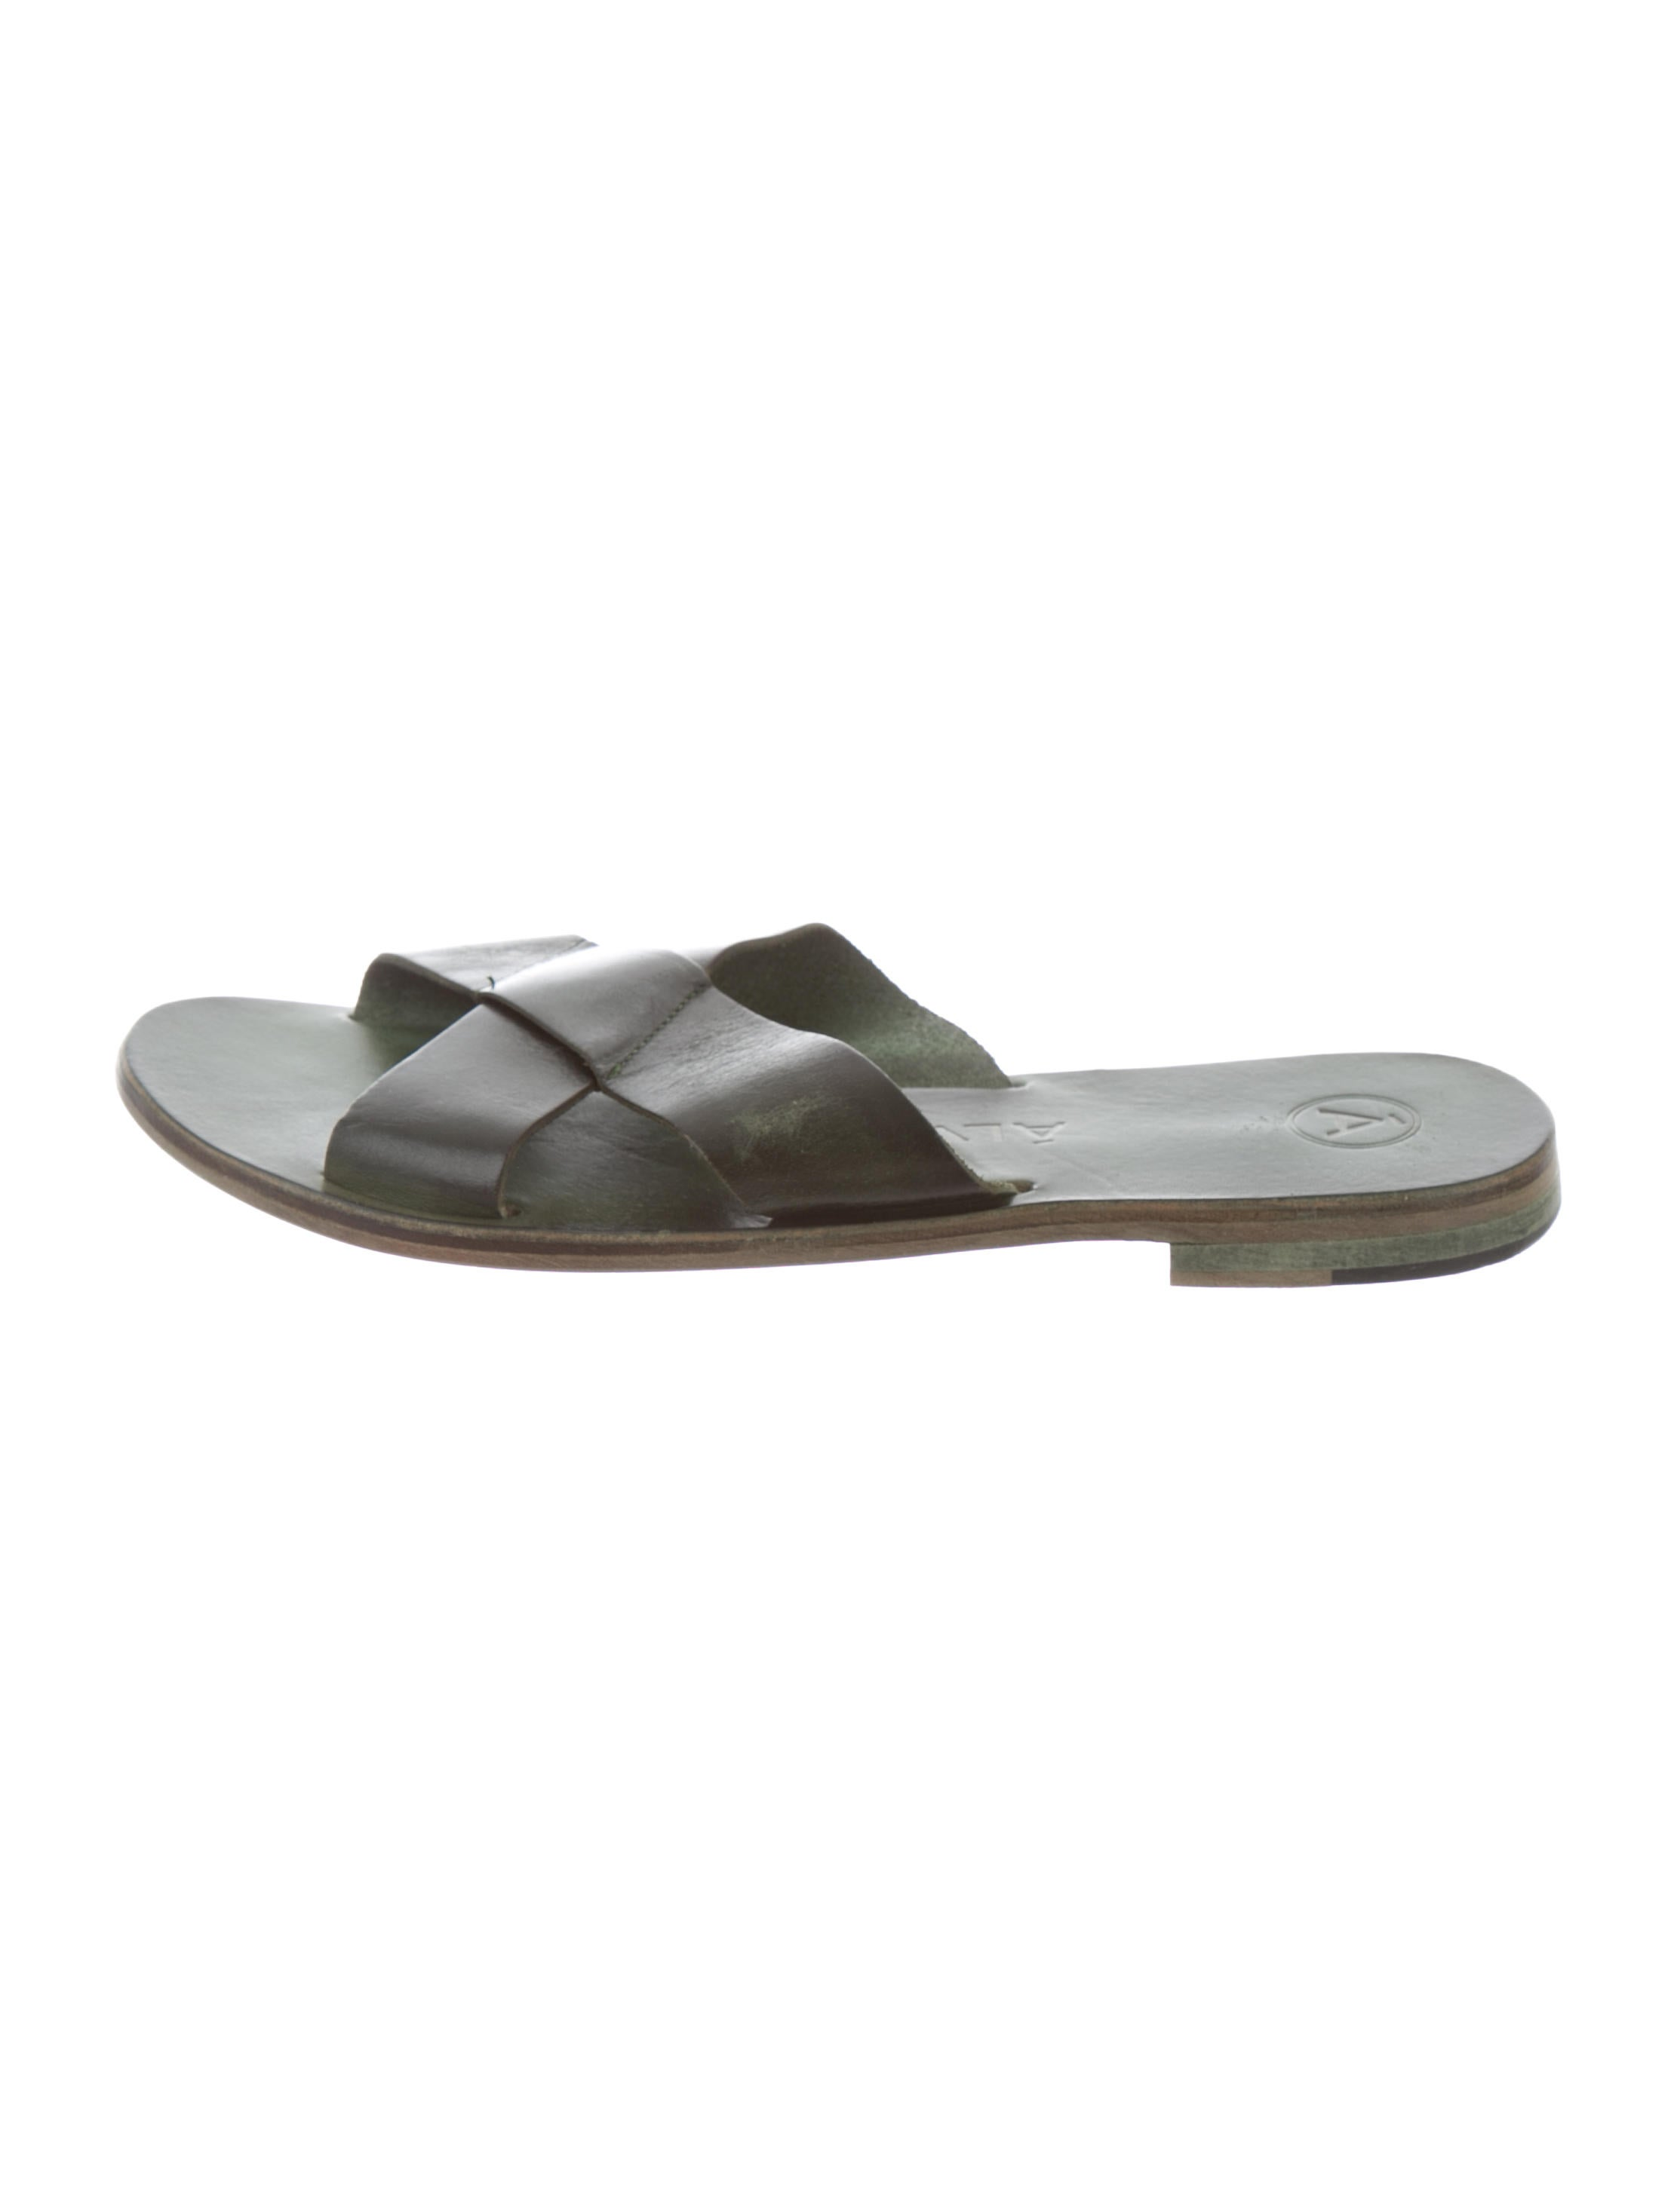 e8a4612034d7 Álvaro Antonio Slide Sandals - Shoes - WALGO20046